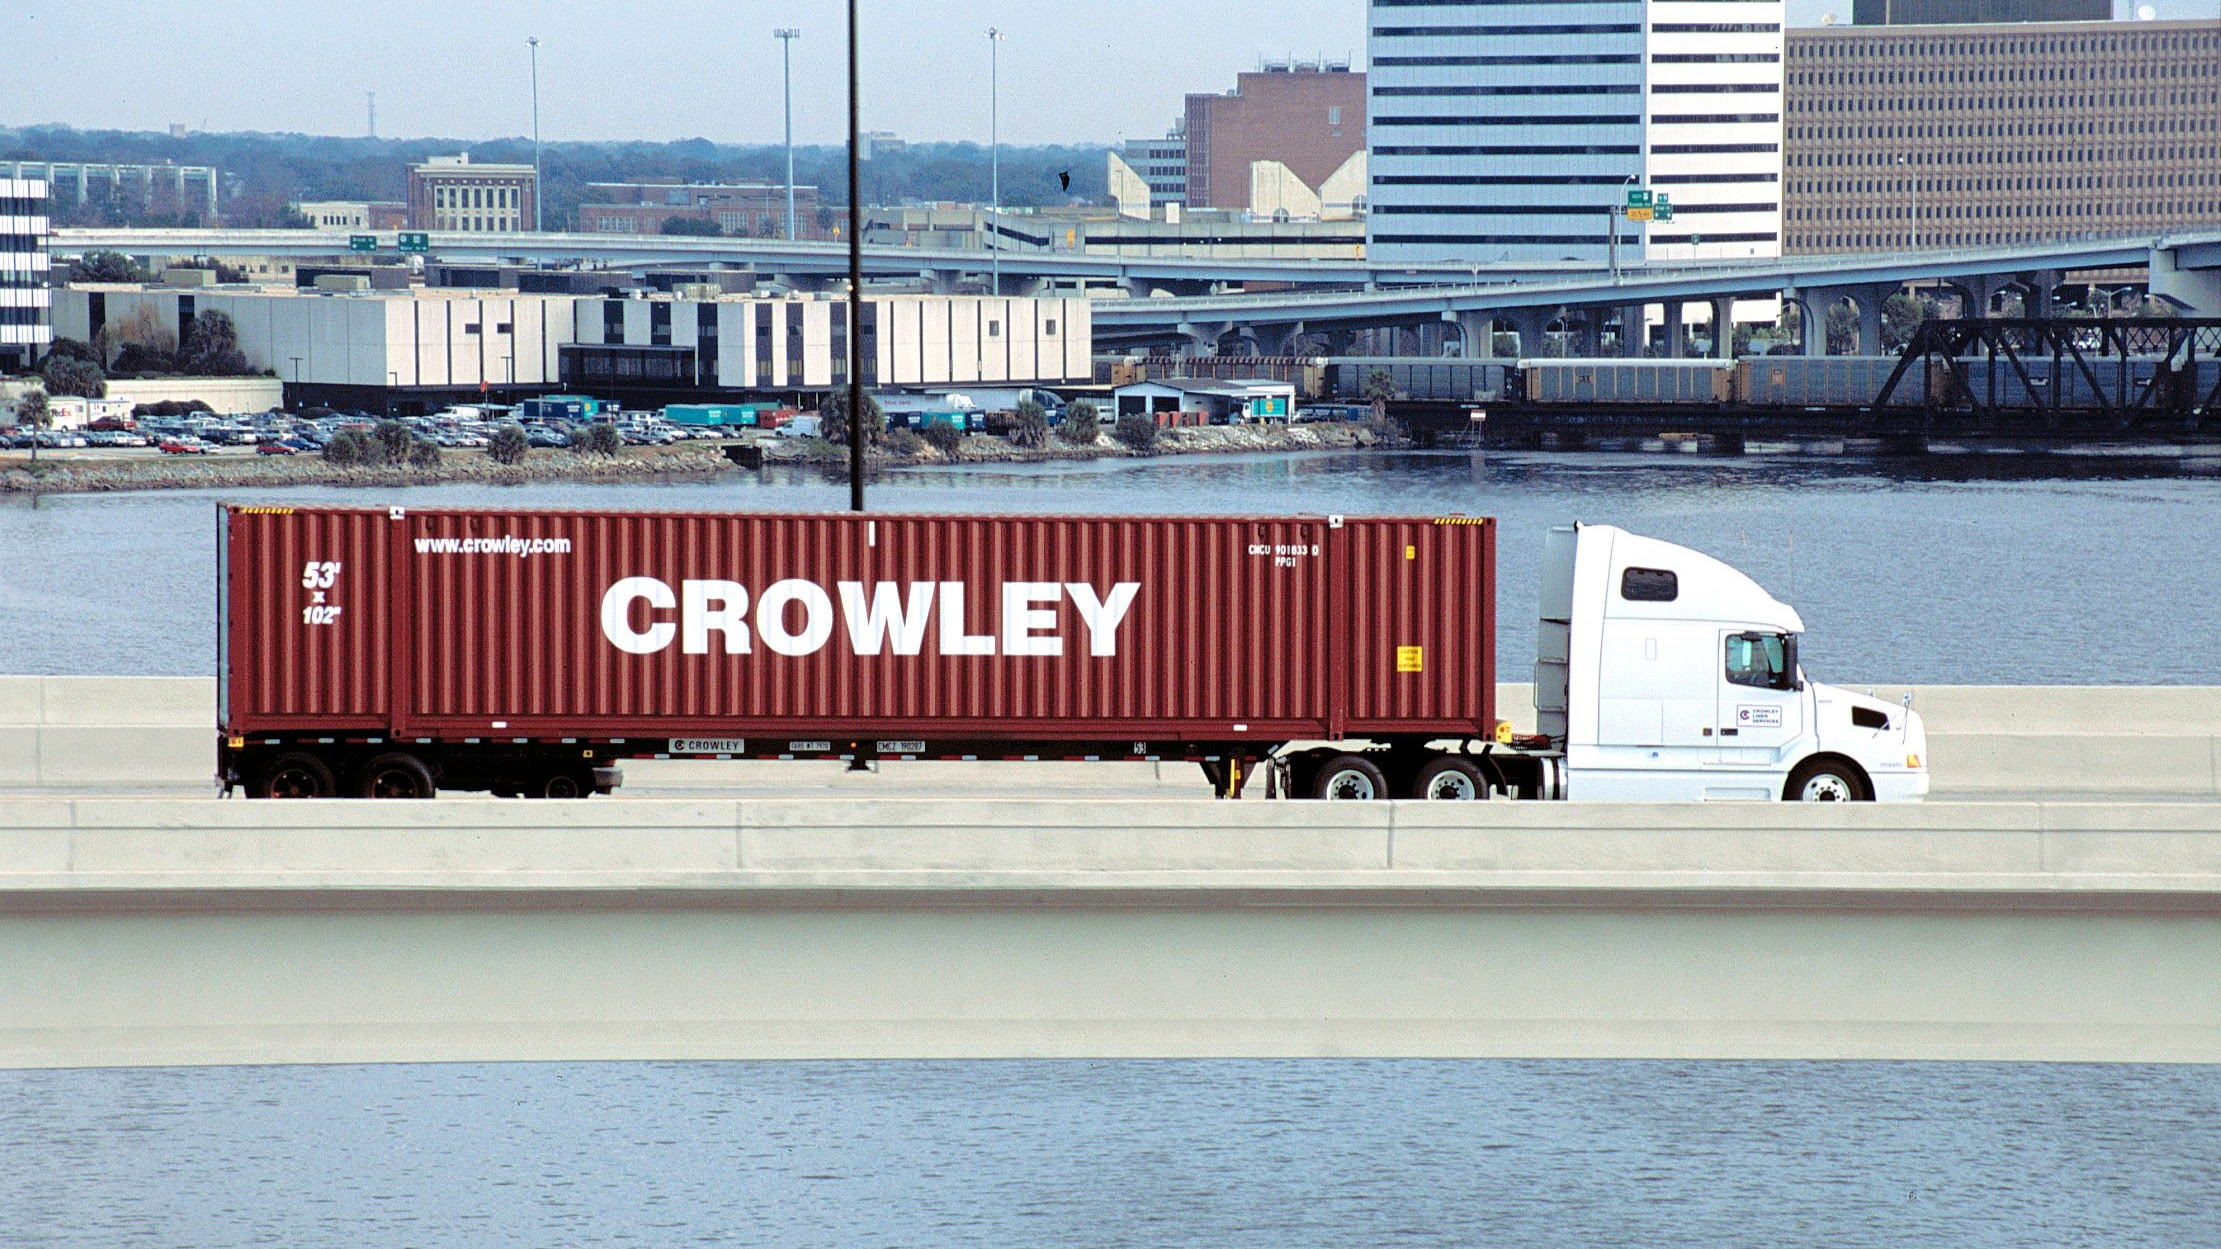 Crowley Maritime Corporation Hq In Jacksonville Fl 32225